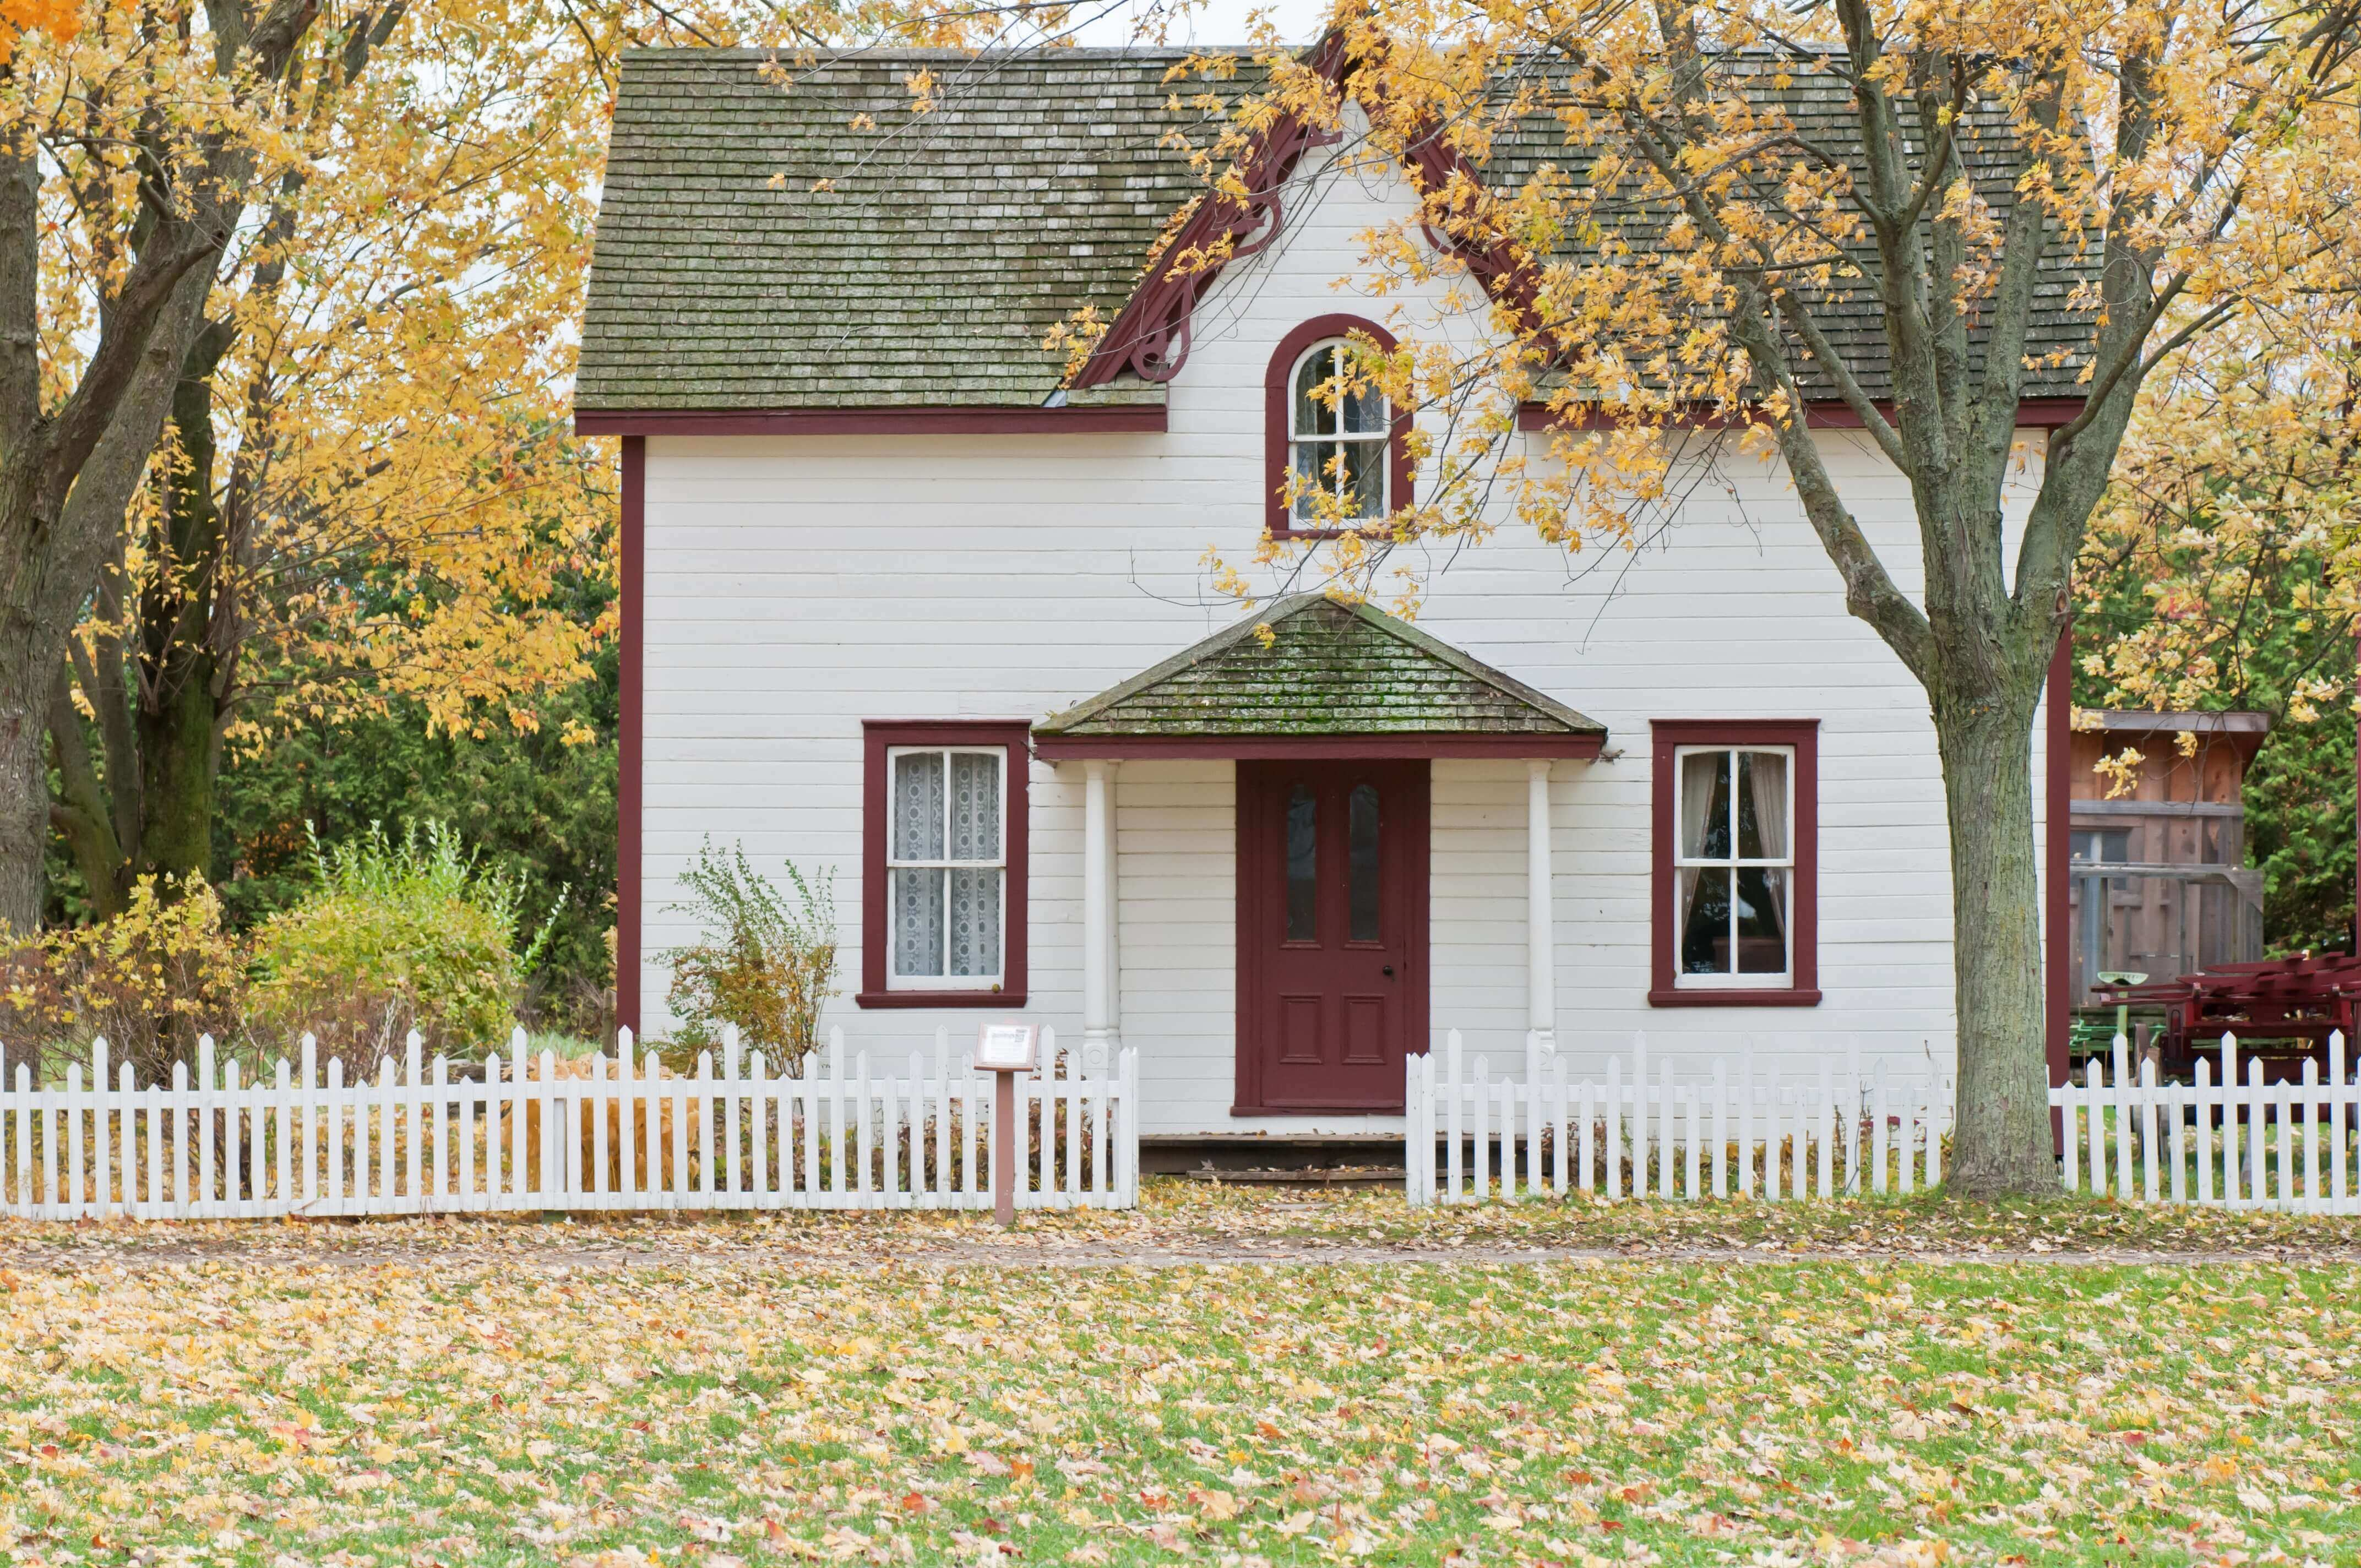 Image shows a white house in a leafy area. Represents the simple lifestyle attached to frugal living.